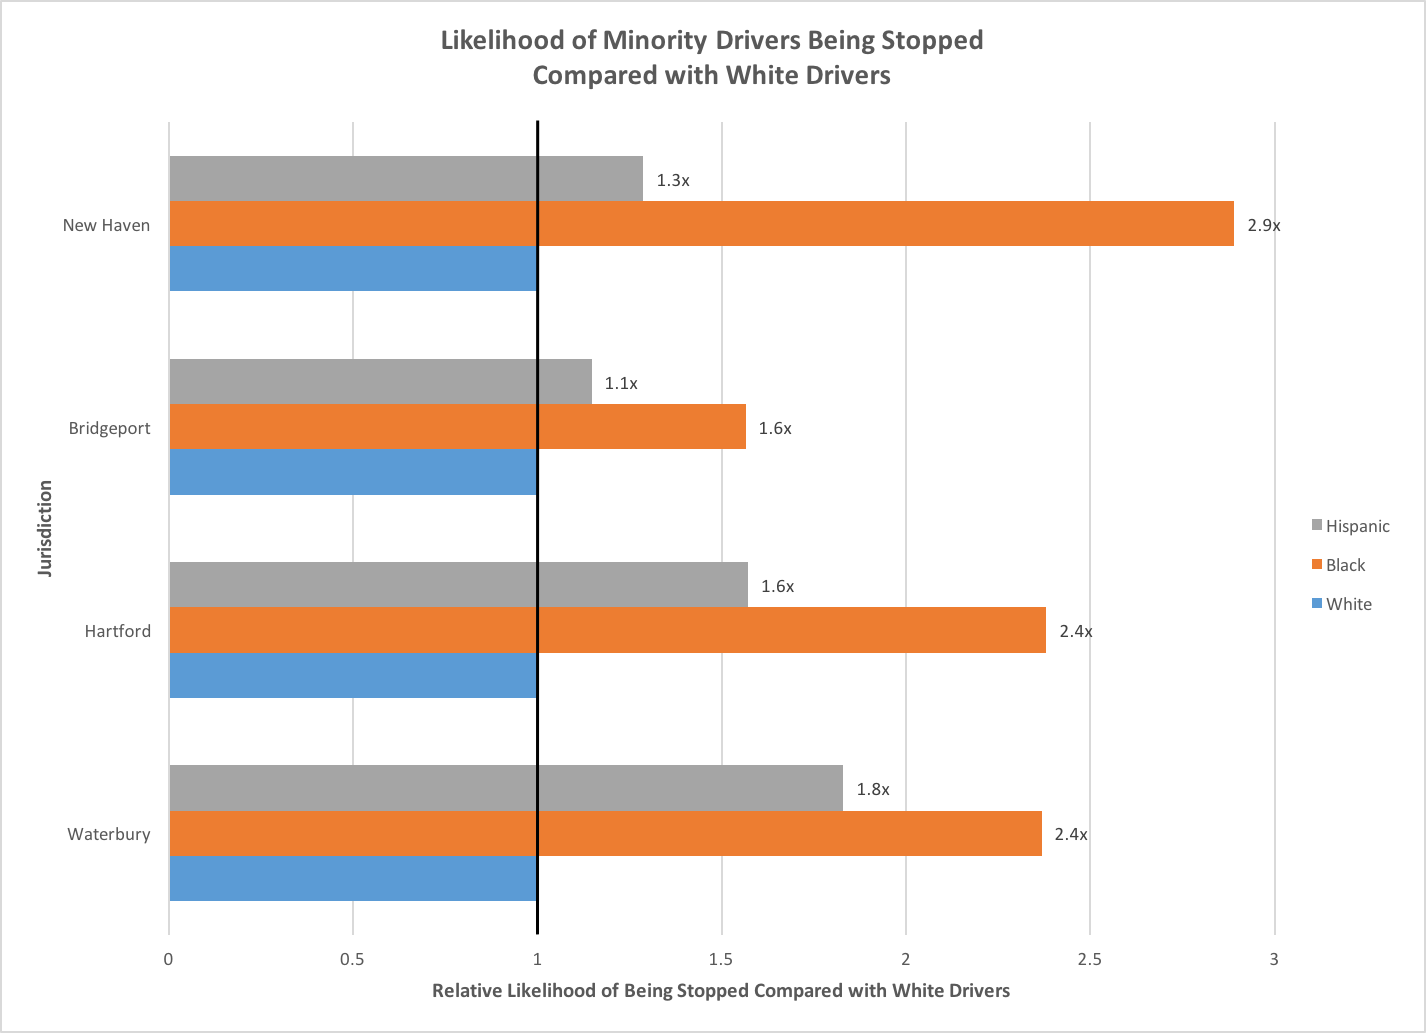 Likelihood of Minority Drivers Being Stopped